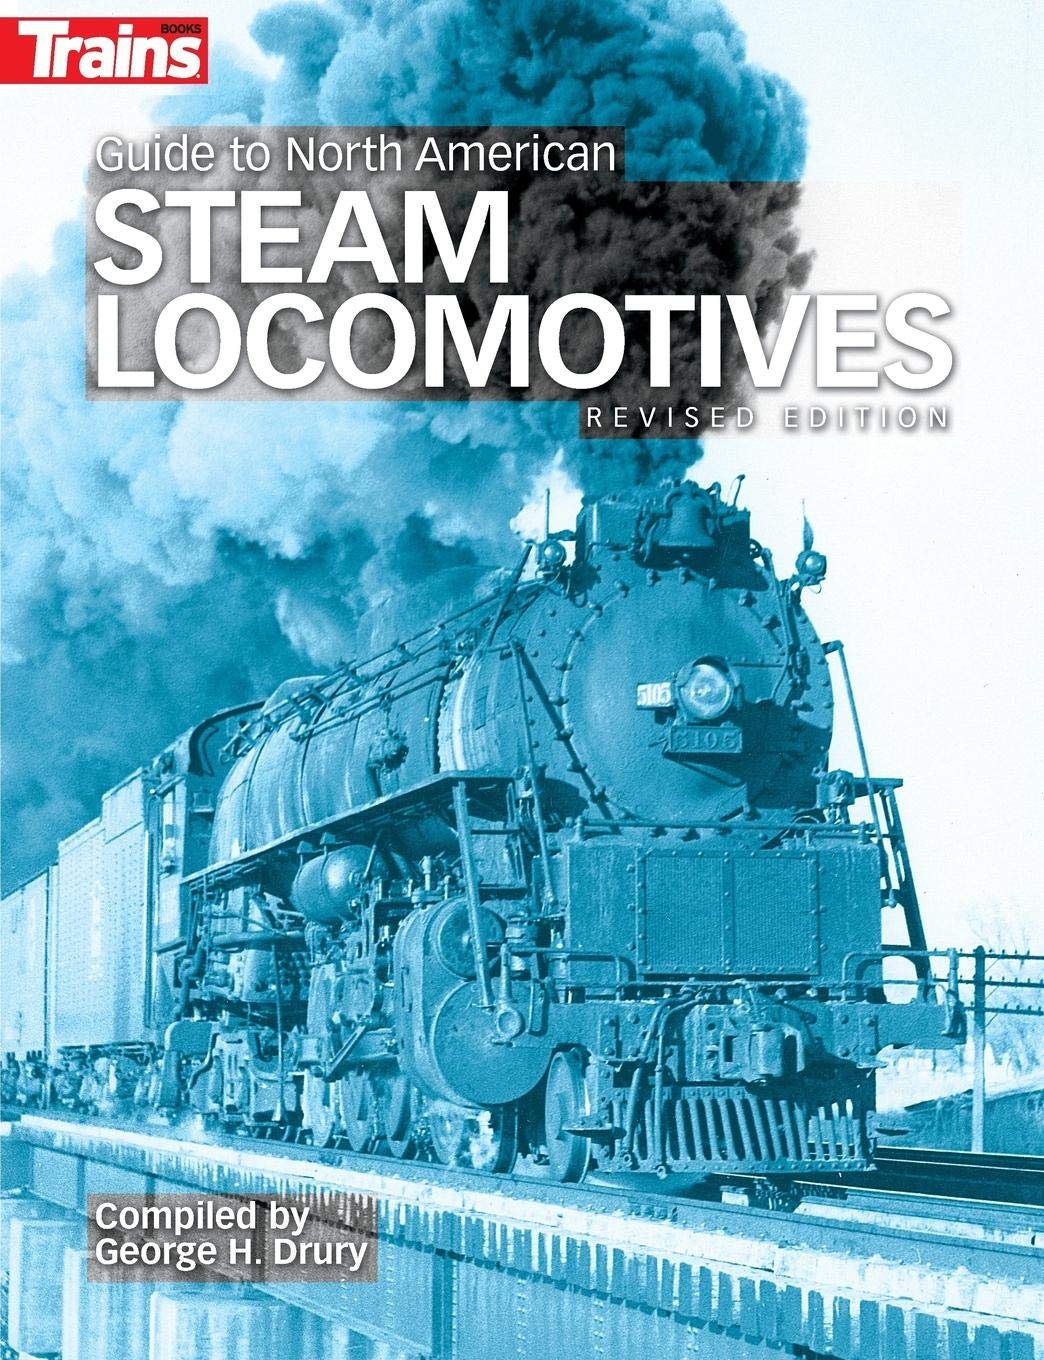 Image OfGuide To North American Steam Locomotives